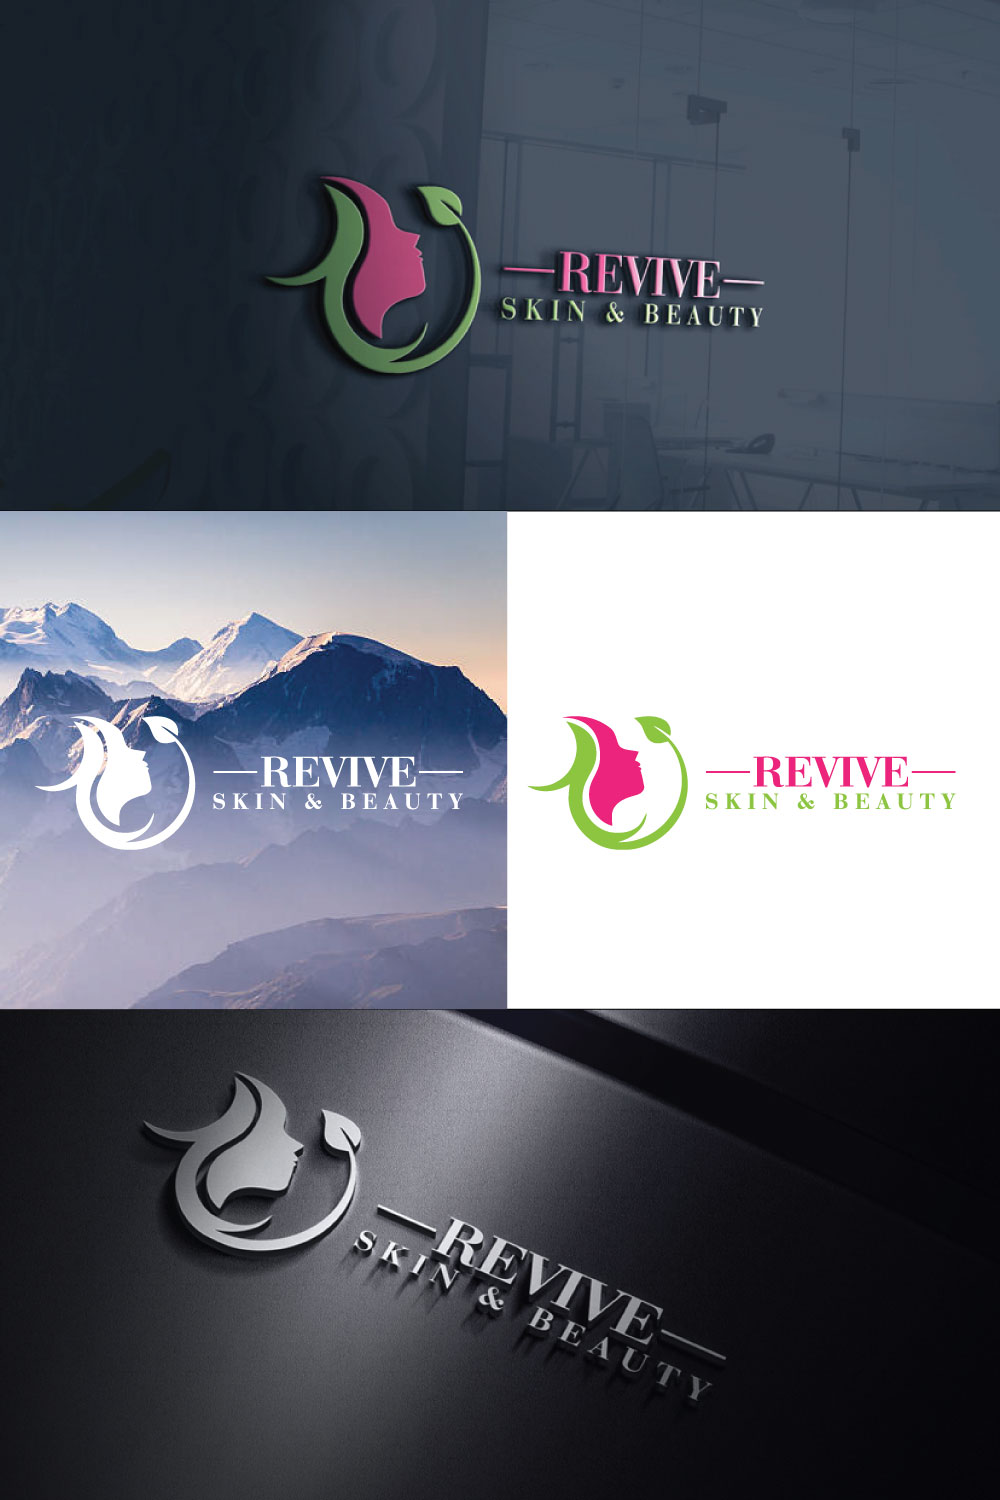 Elegant, Playful, Beauty Salon Logo Design for Revive Skin